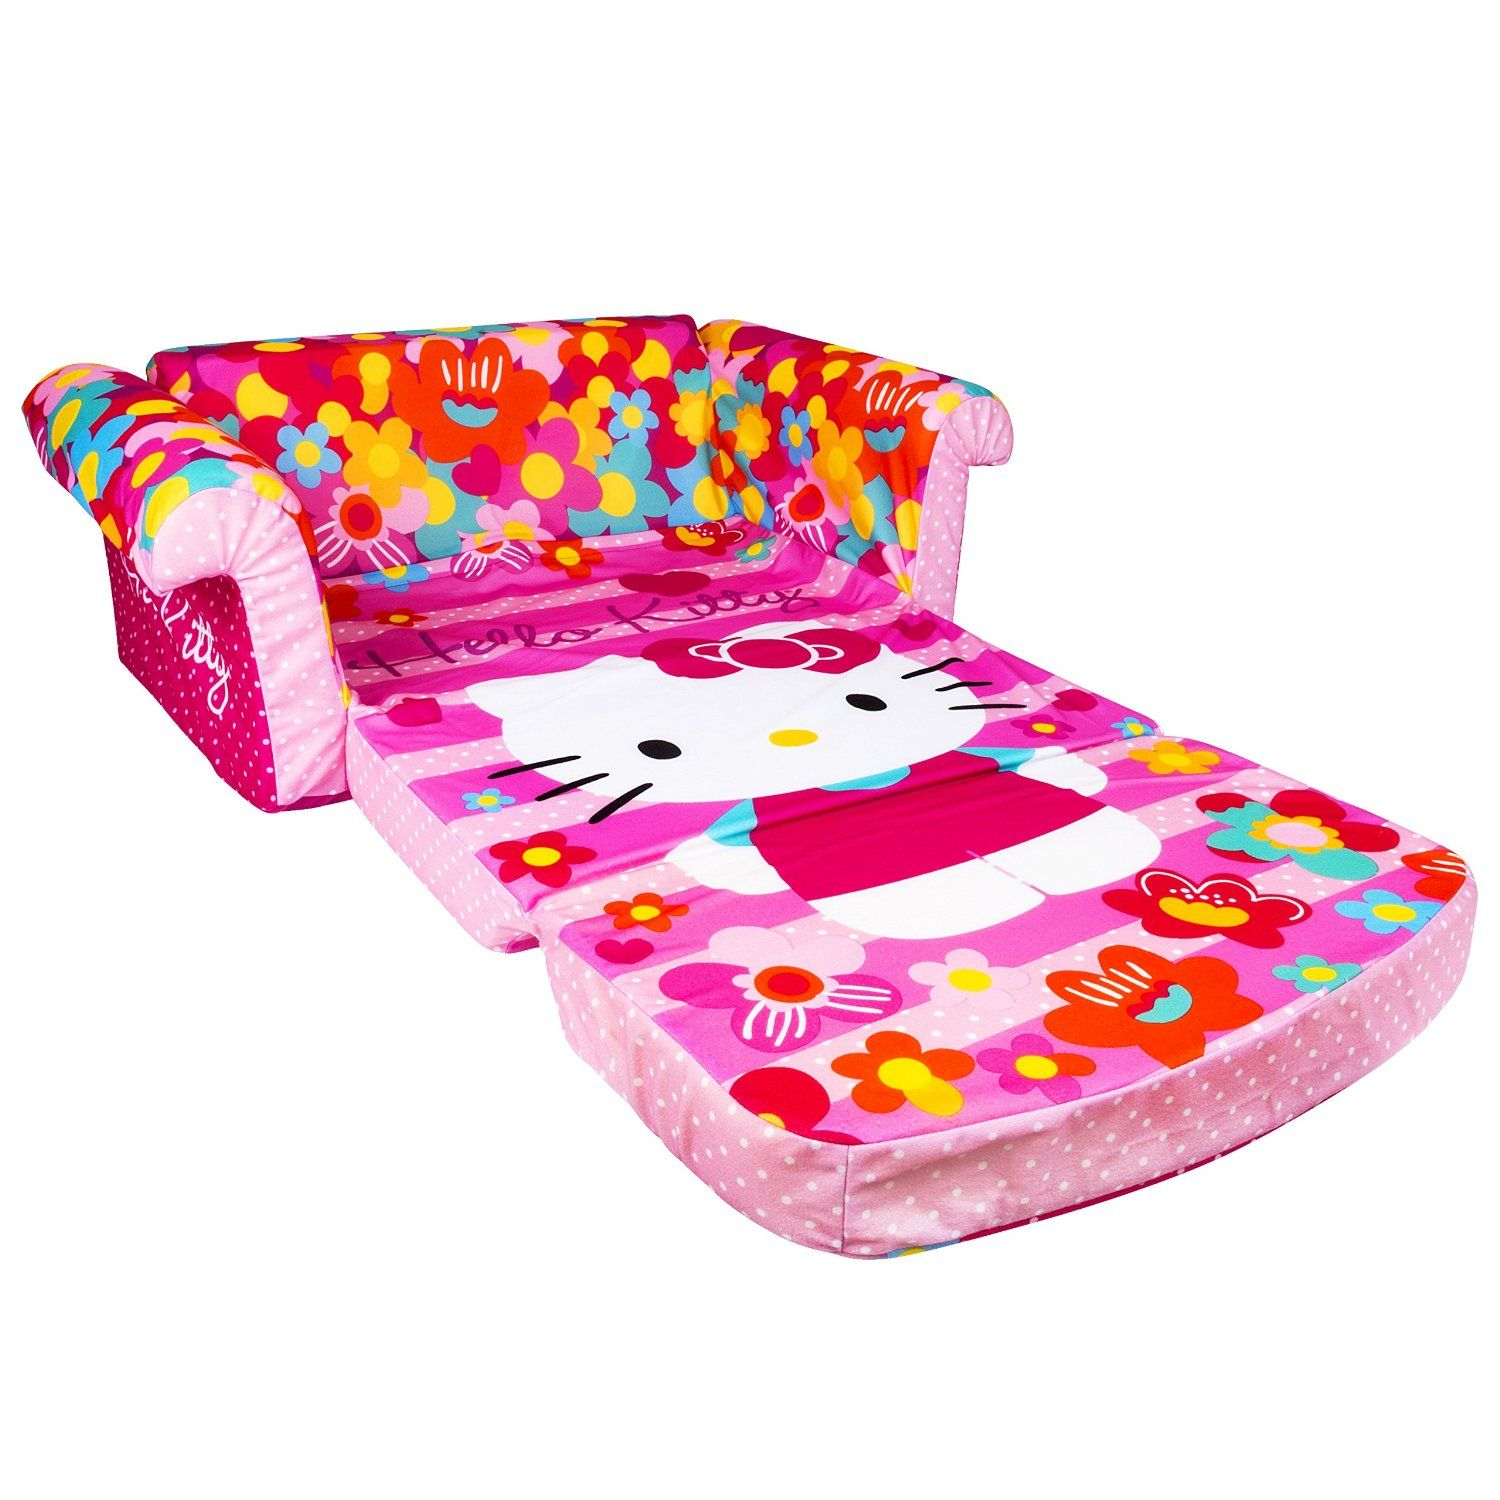 Pin by Candy Wilcox on Hello kitty Hello kitty furniture